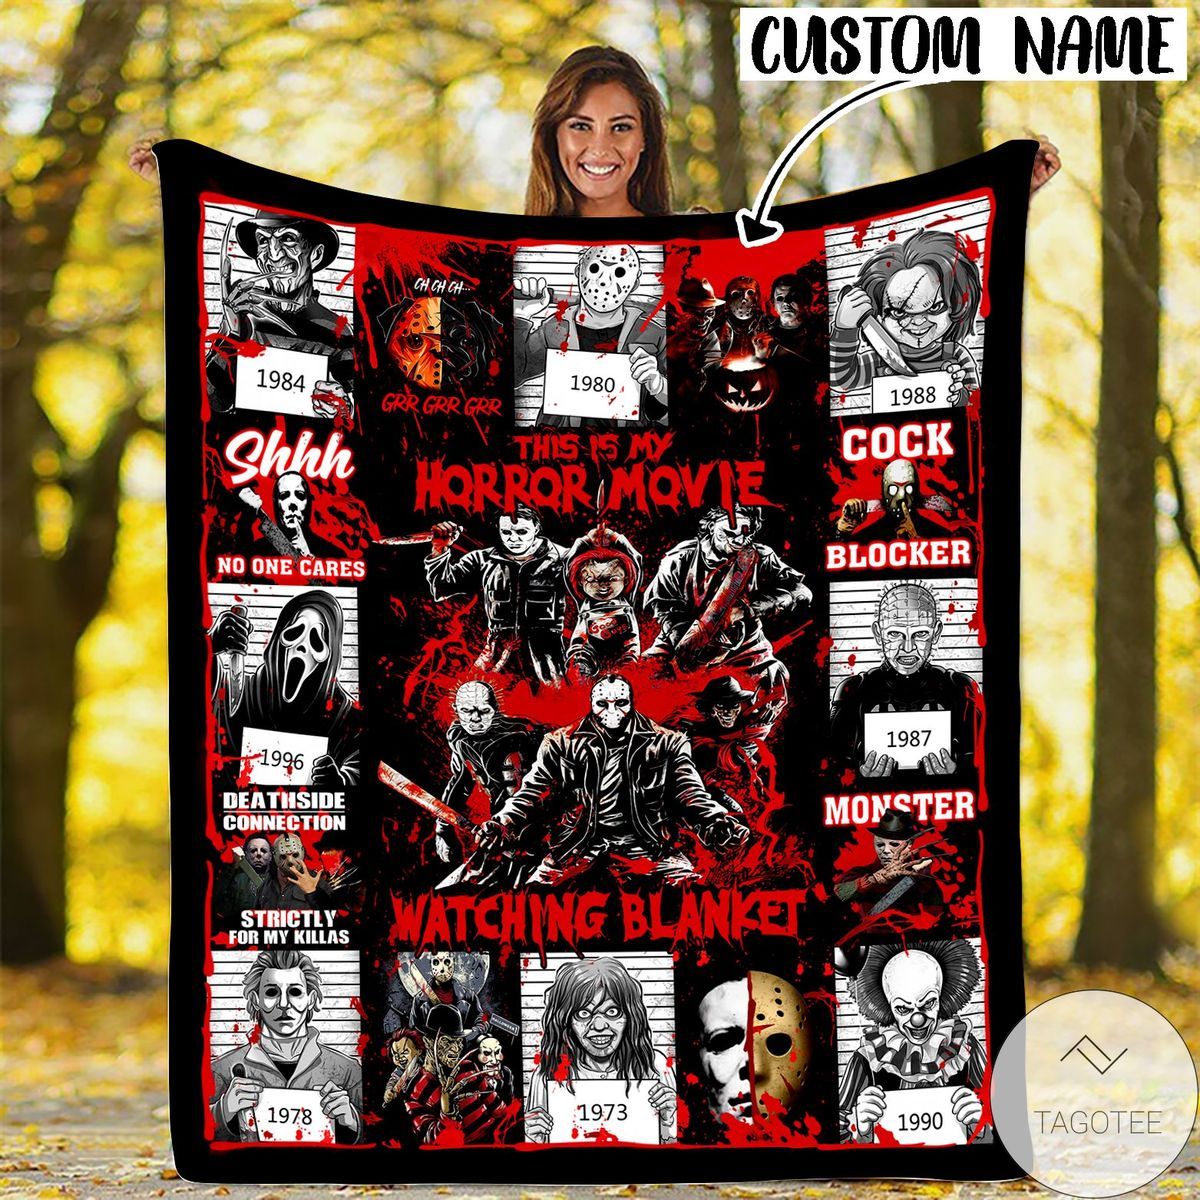 Personalized This Is My Horror Movie Watching Halloween Blanket